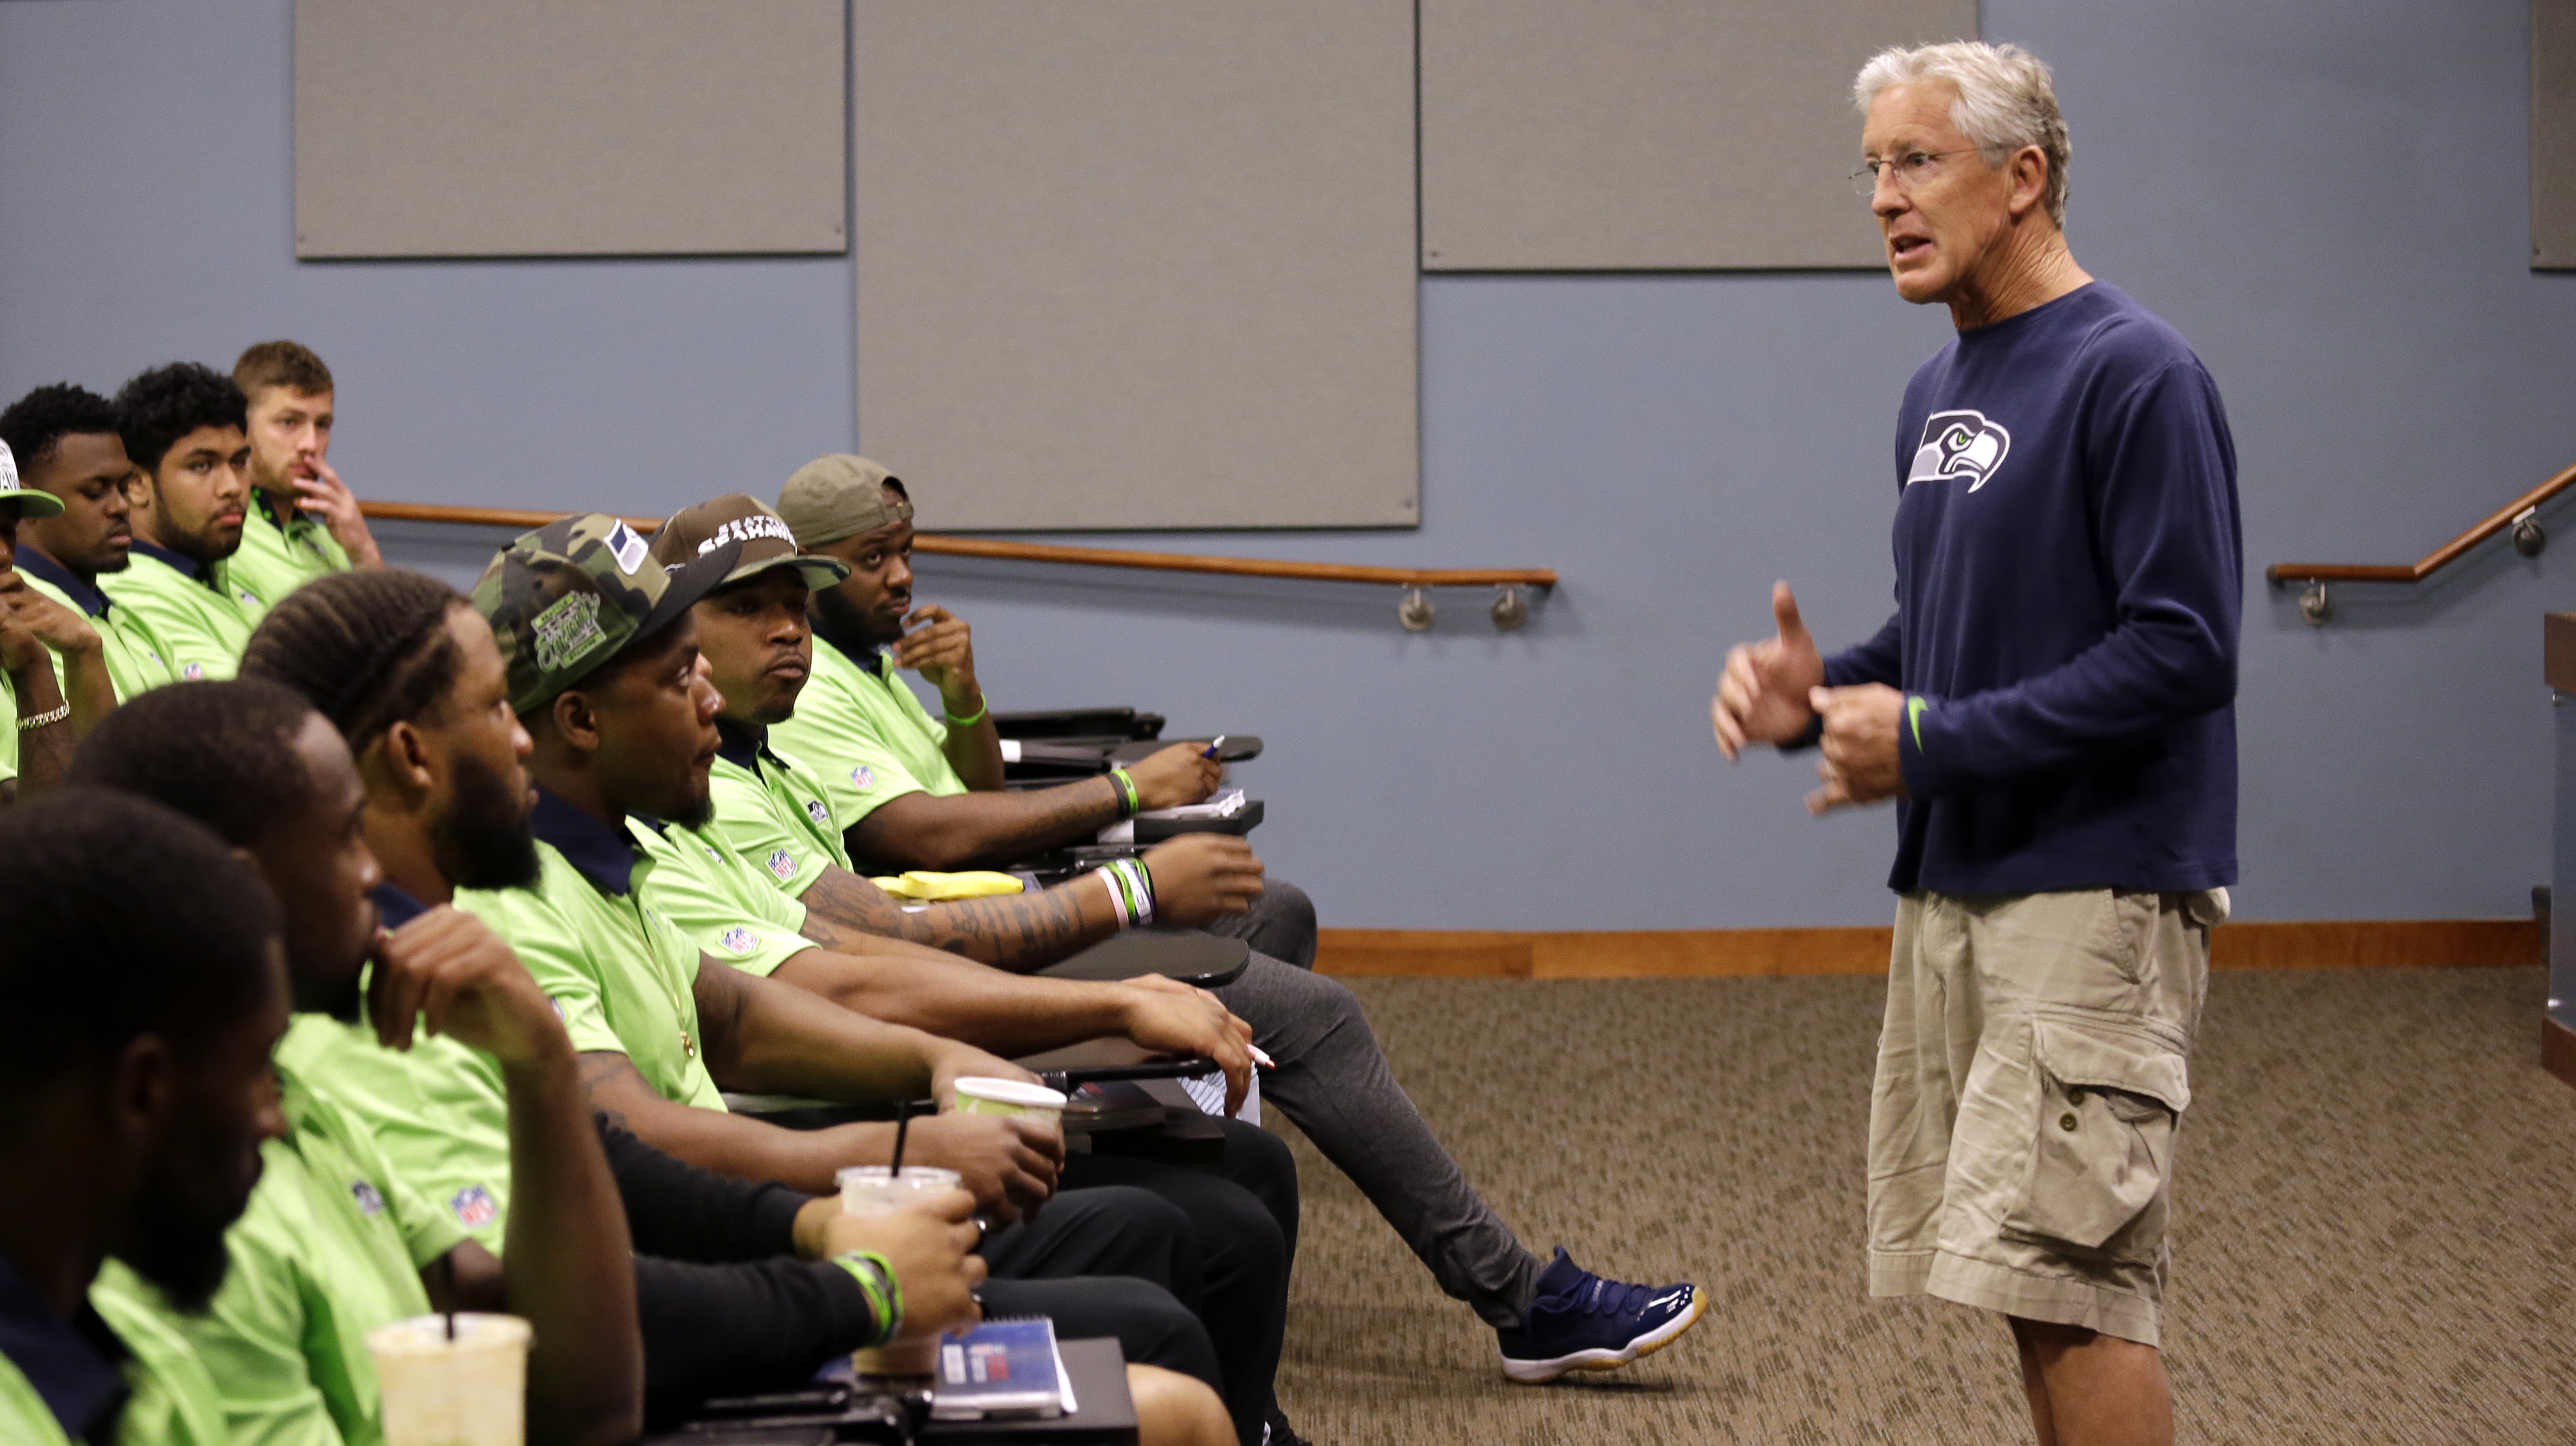 Seattle Seahawks coach Pete Carroll talks with rookies at the football team's training camp Monday, June 20, 2016, in Renton, Wash. The team is holding a rookie symposium for the new players to give them information about the NFL. (AP Photo/Elaine Thompso